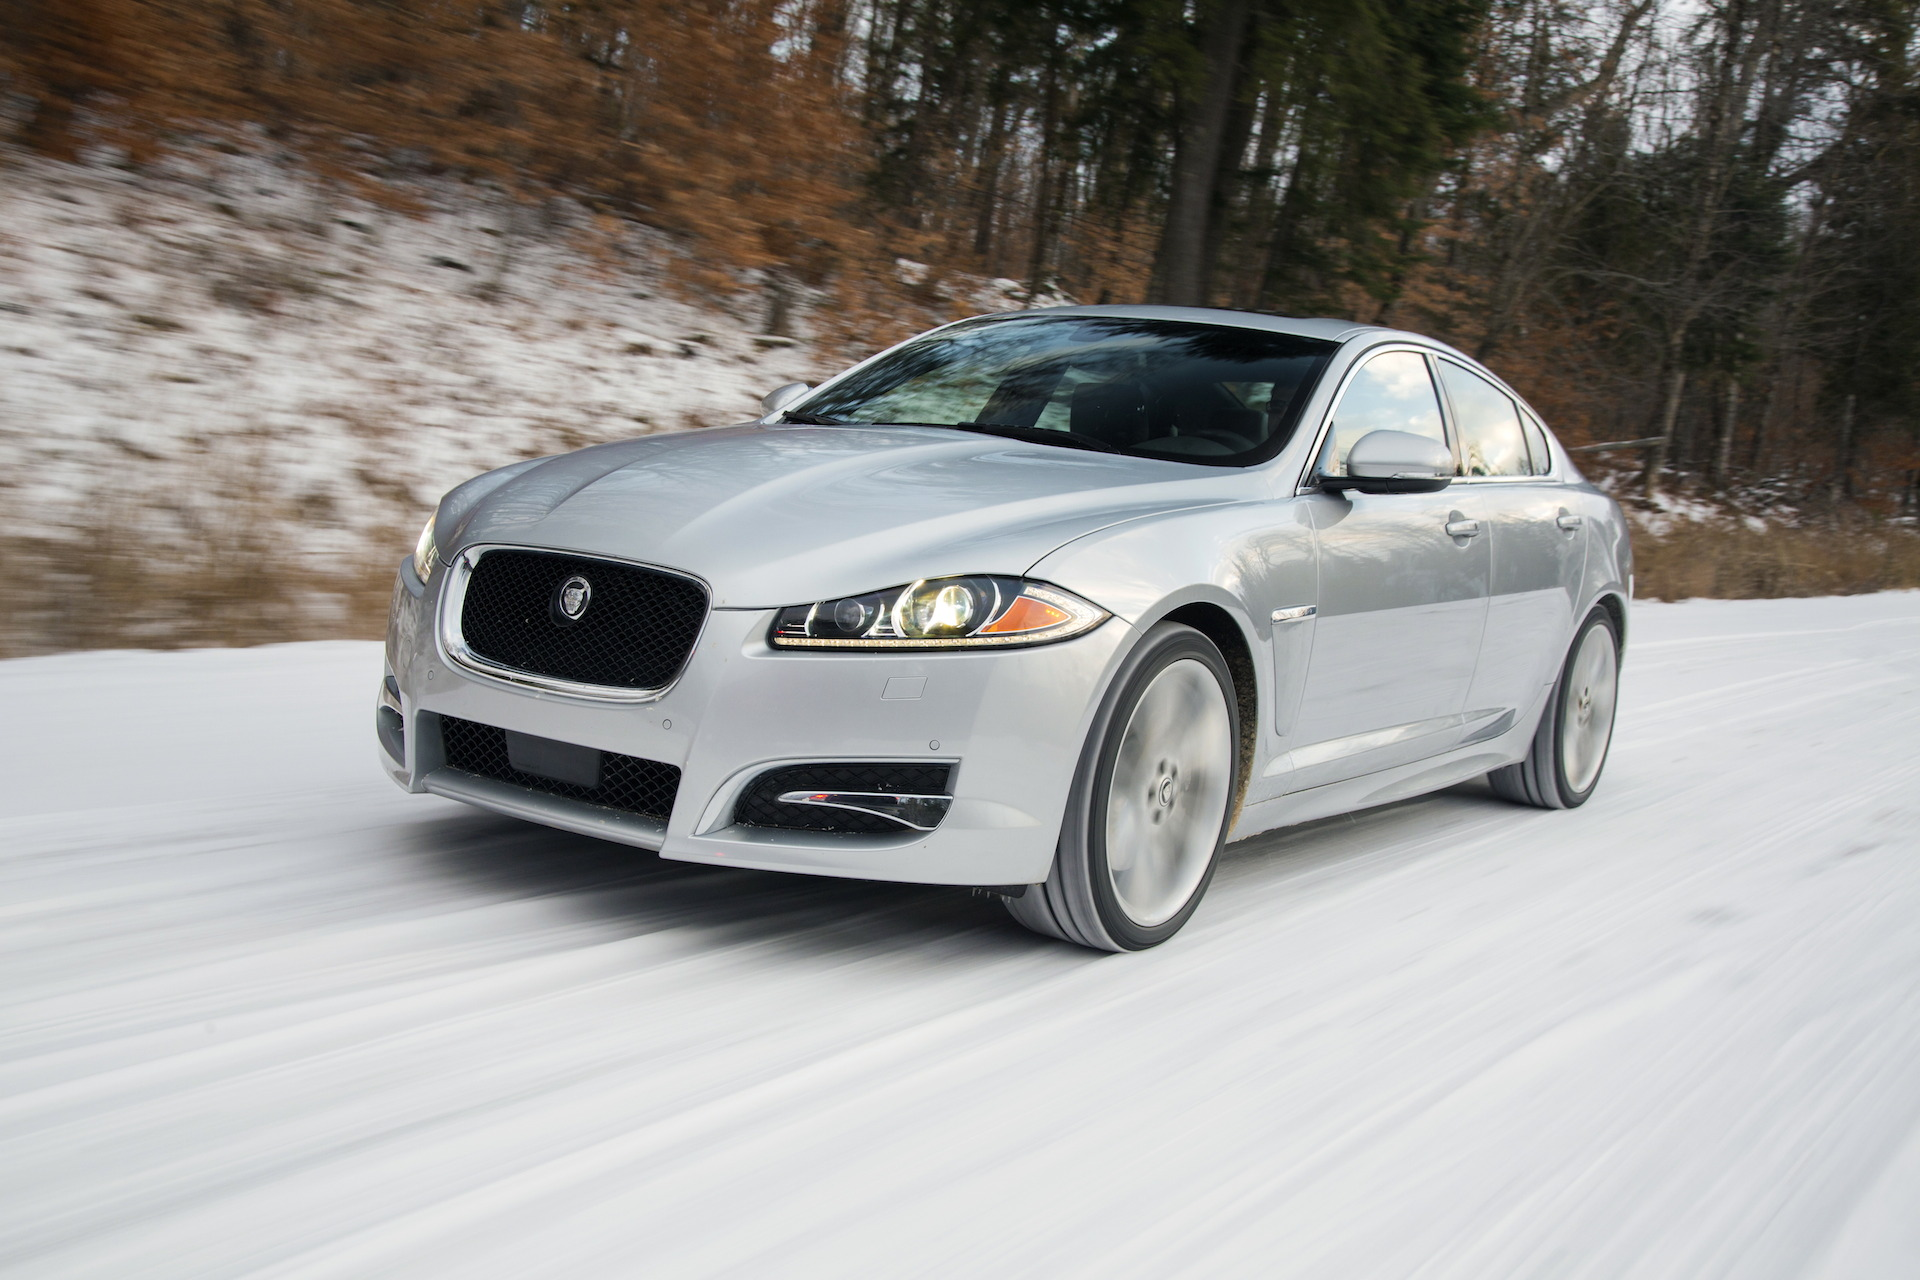 2015 jaguar xf styling review the car connection. Black Bedroom Furniture Sets. Home Design Ideas